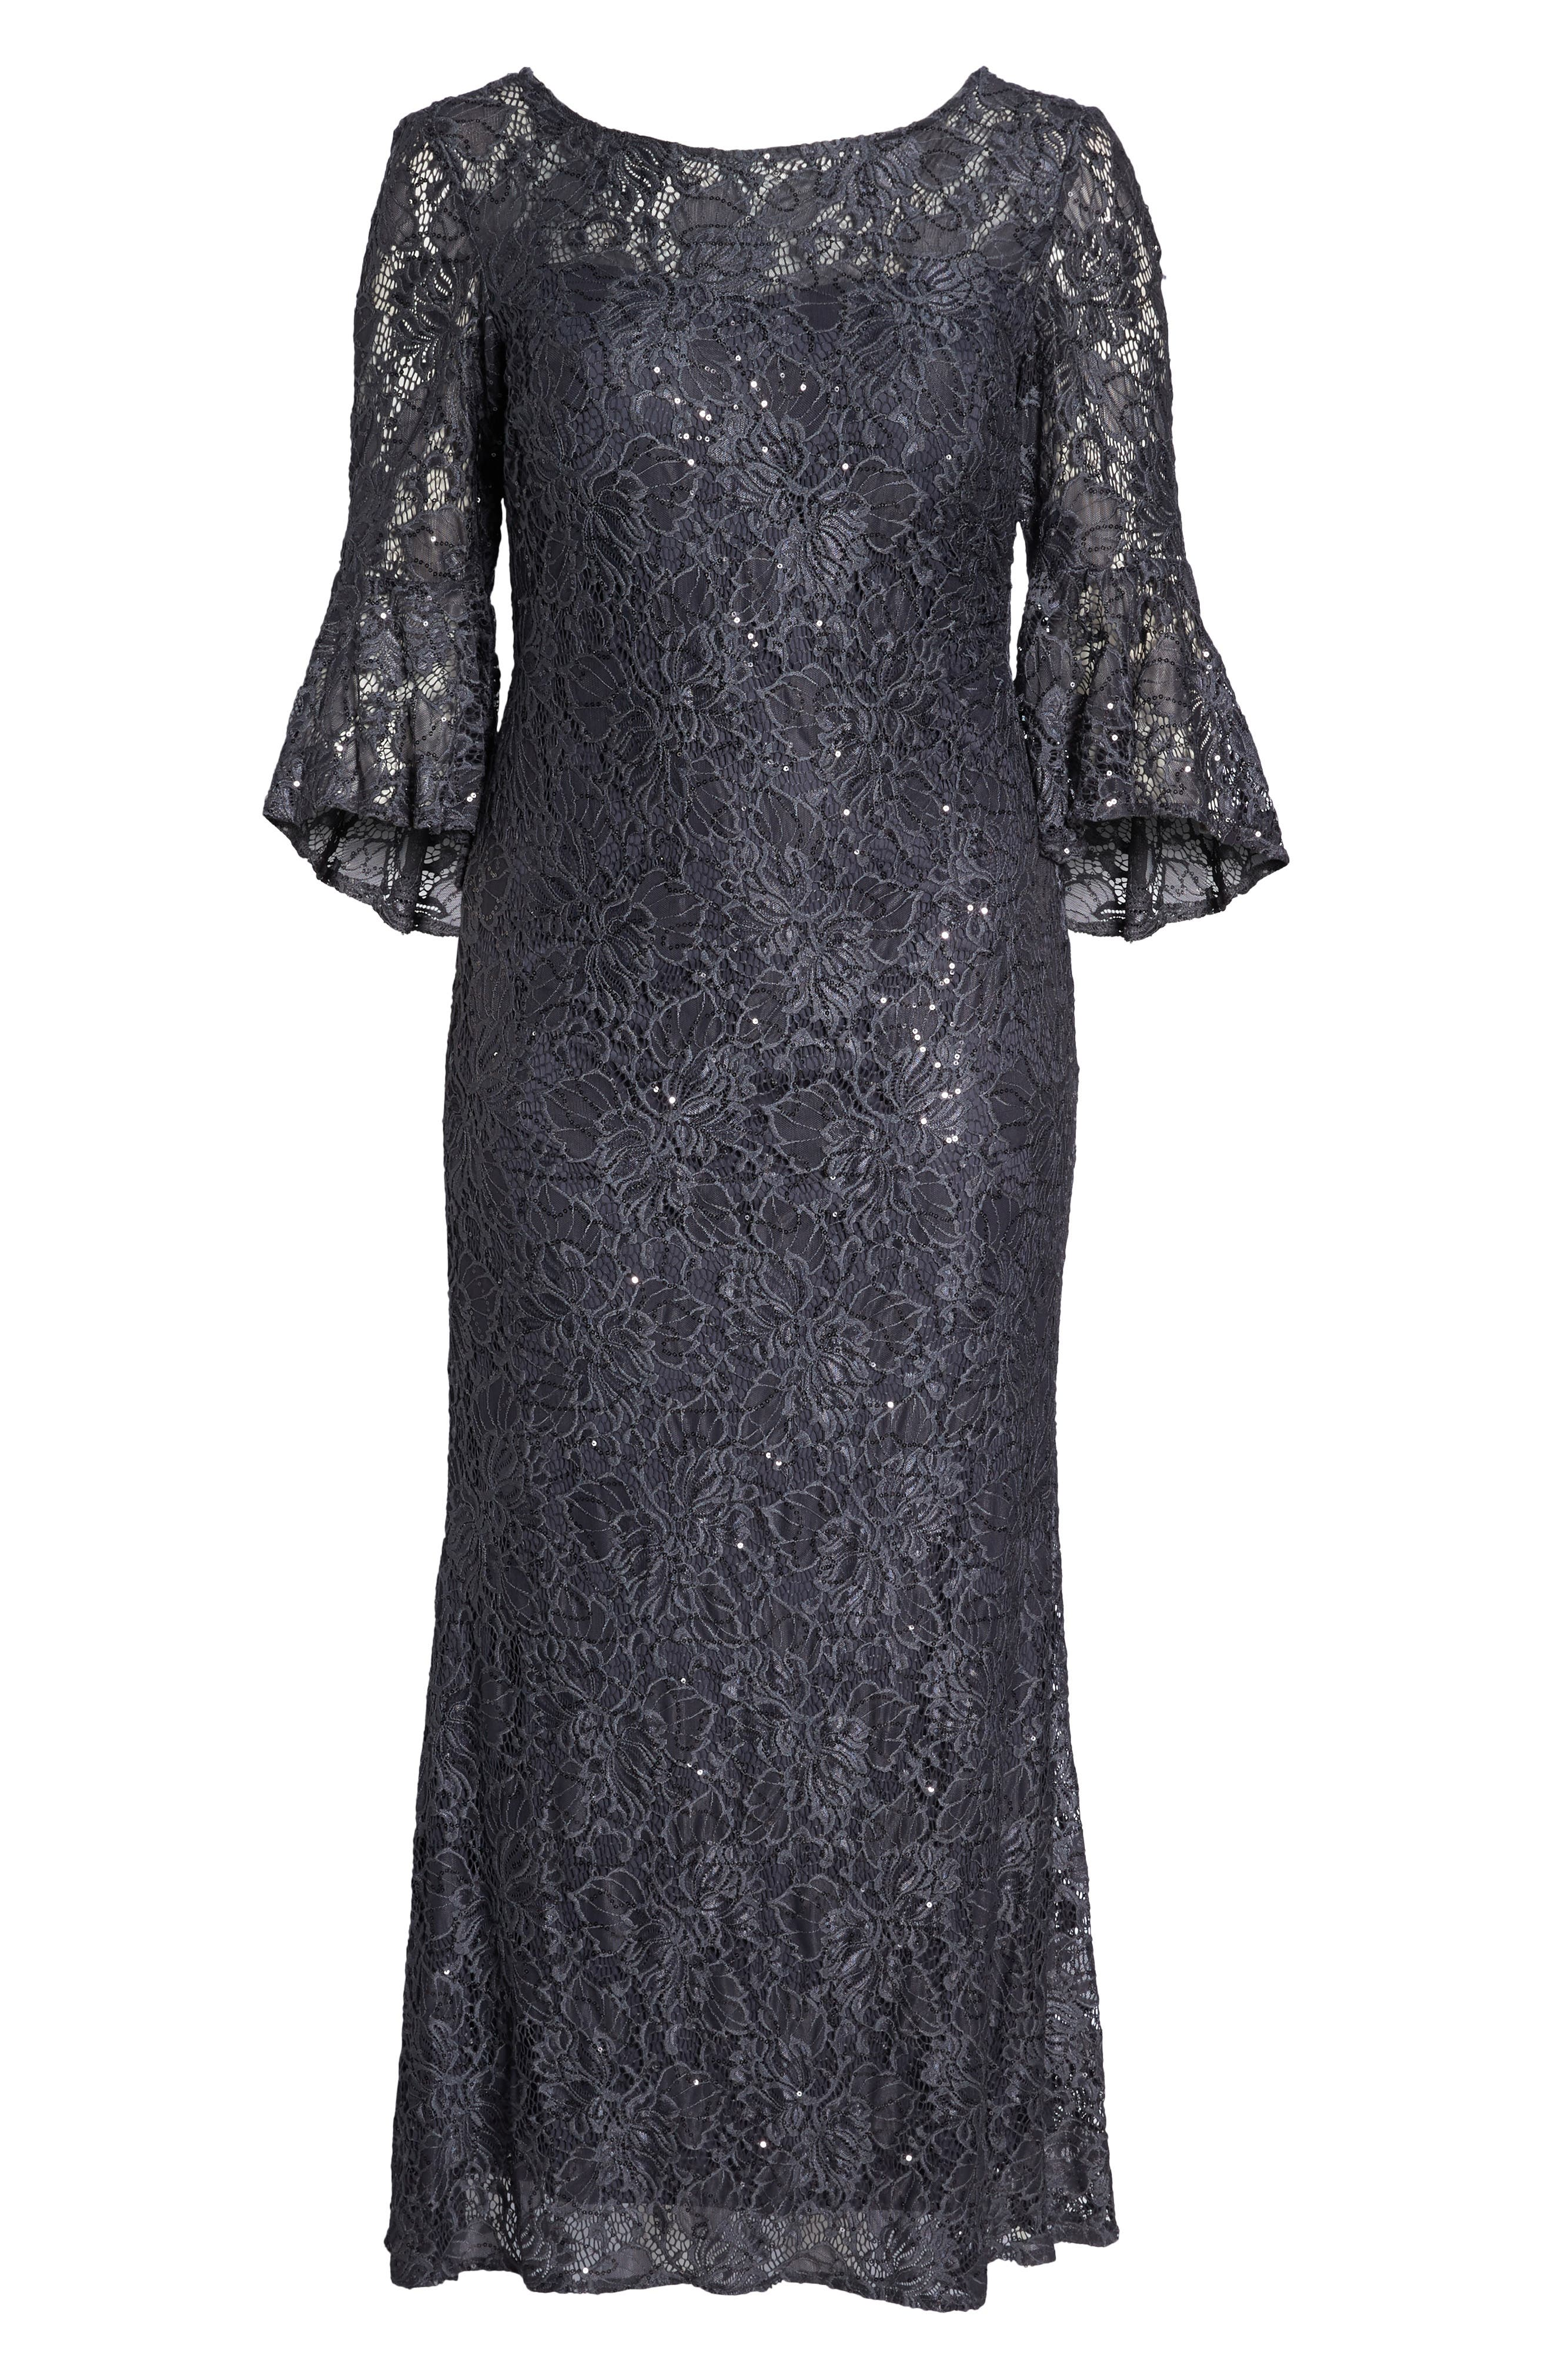 MORGAN & CO., Lace Bell Sleeve Gown, Alternate thumbnail 7, color, CHARCOAL